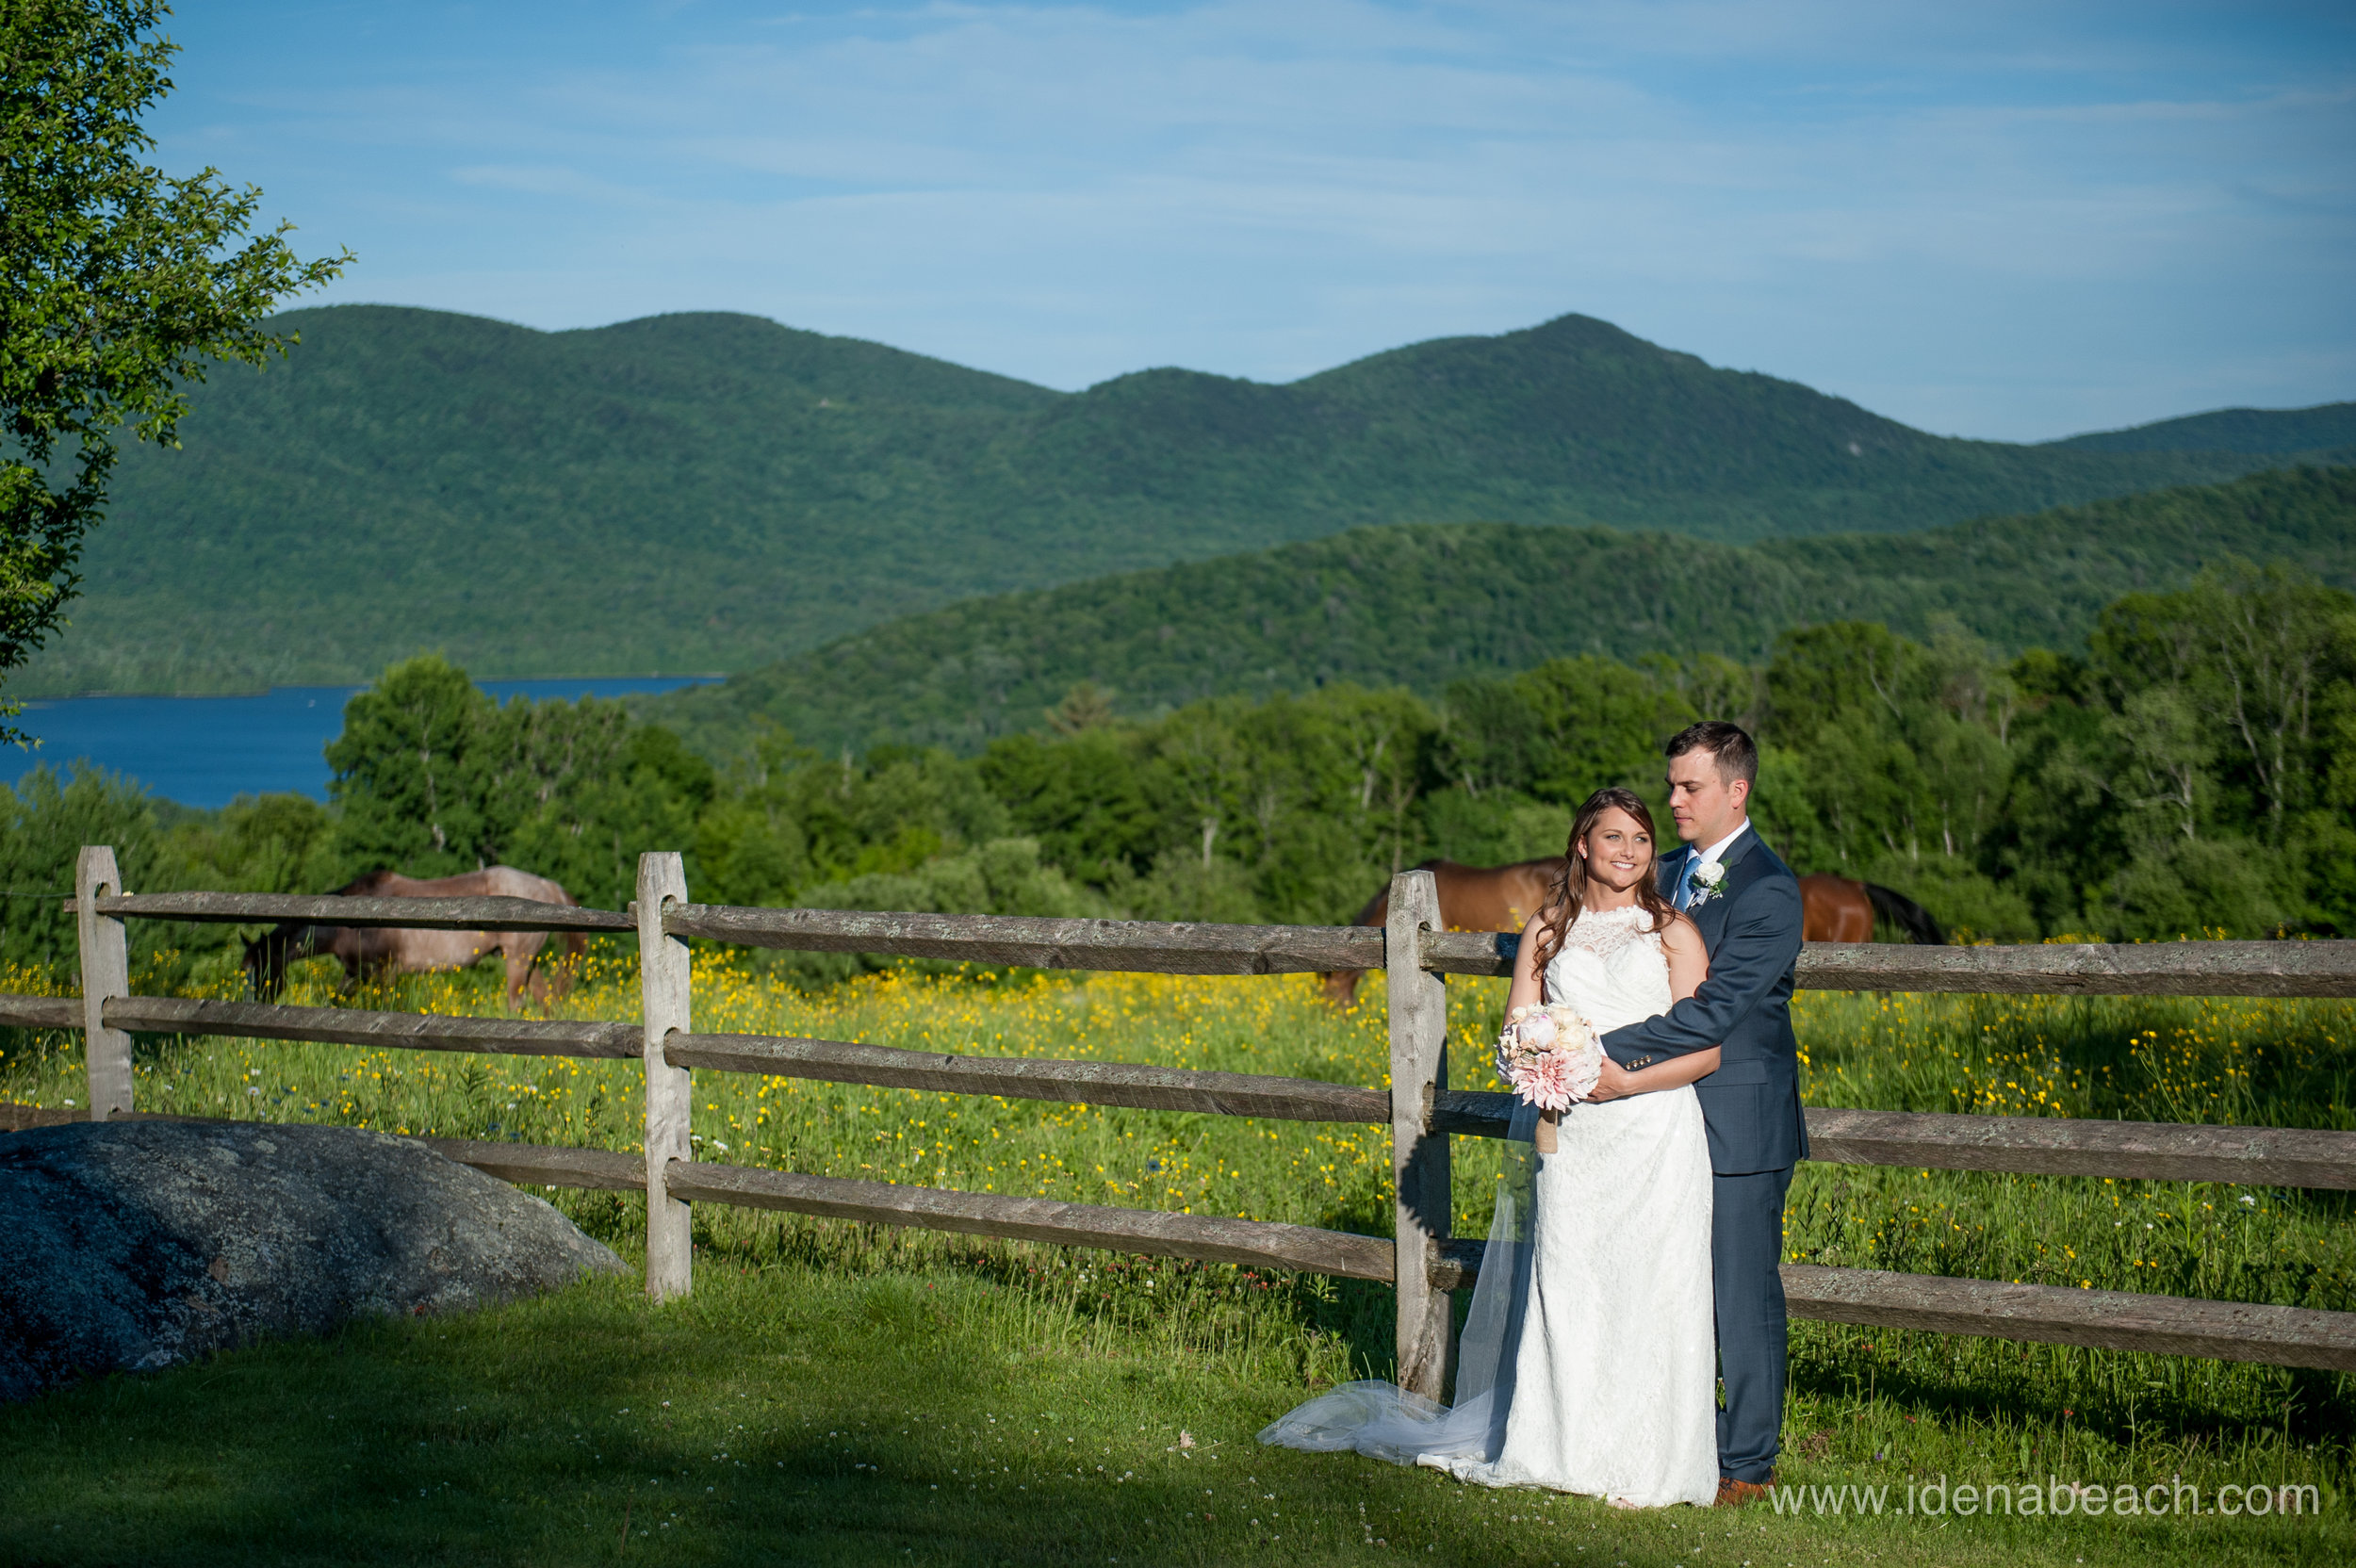 Mountain-Top-Inn-Vermont-Wedding-Photographer-119.jpg